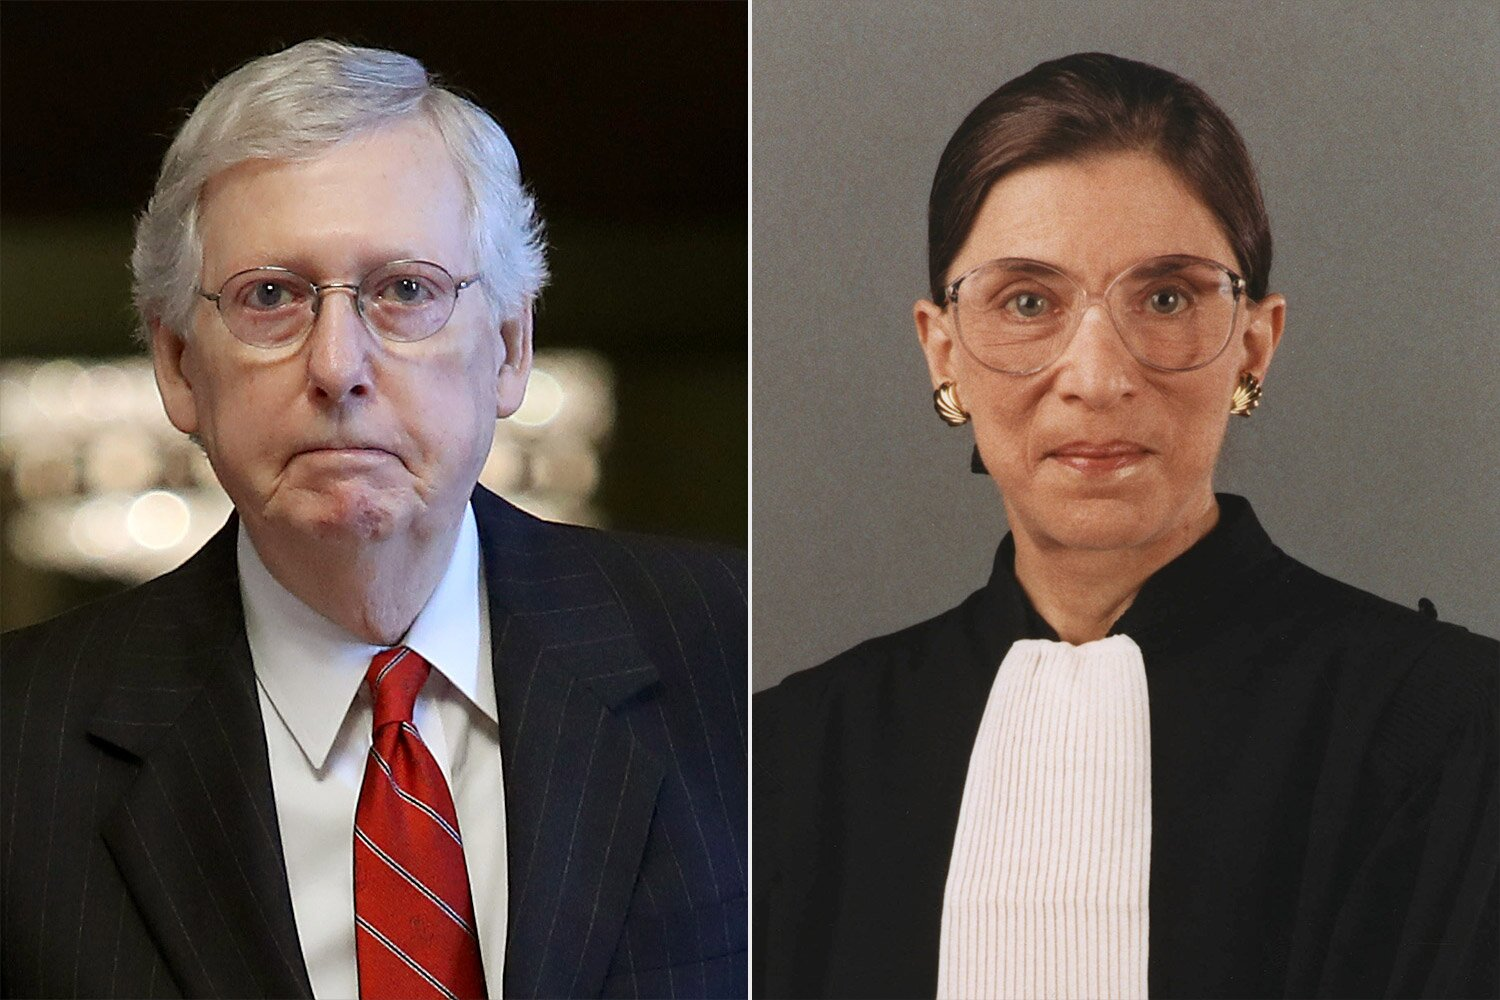 The Serious Side - part 8 - Page 16 Image?url=https%3A%2F%2Fstatic.onecms.io%2Fwp-content%2Fuploads%2Fsites%2F20%2F2020%2F09%2F19%2FMitch-McConnell-RBG-2